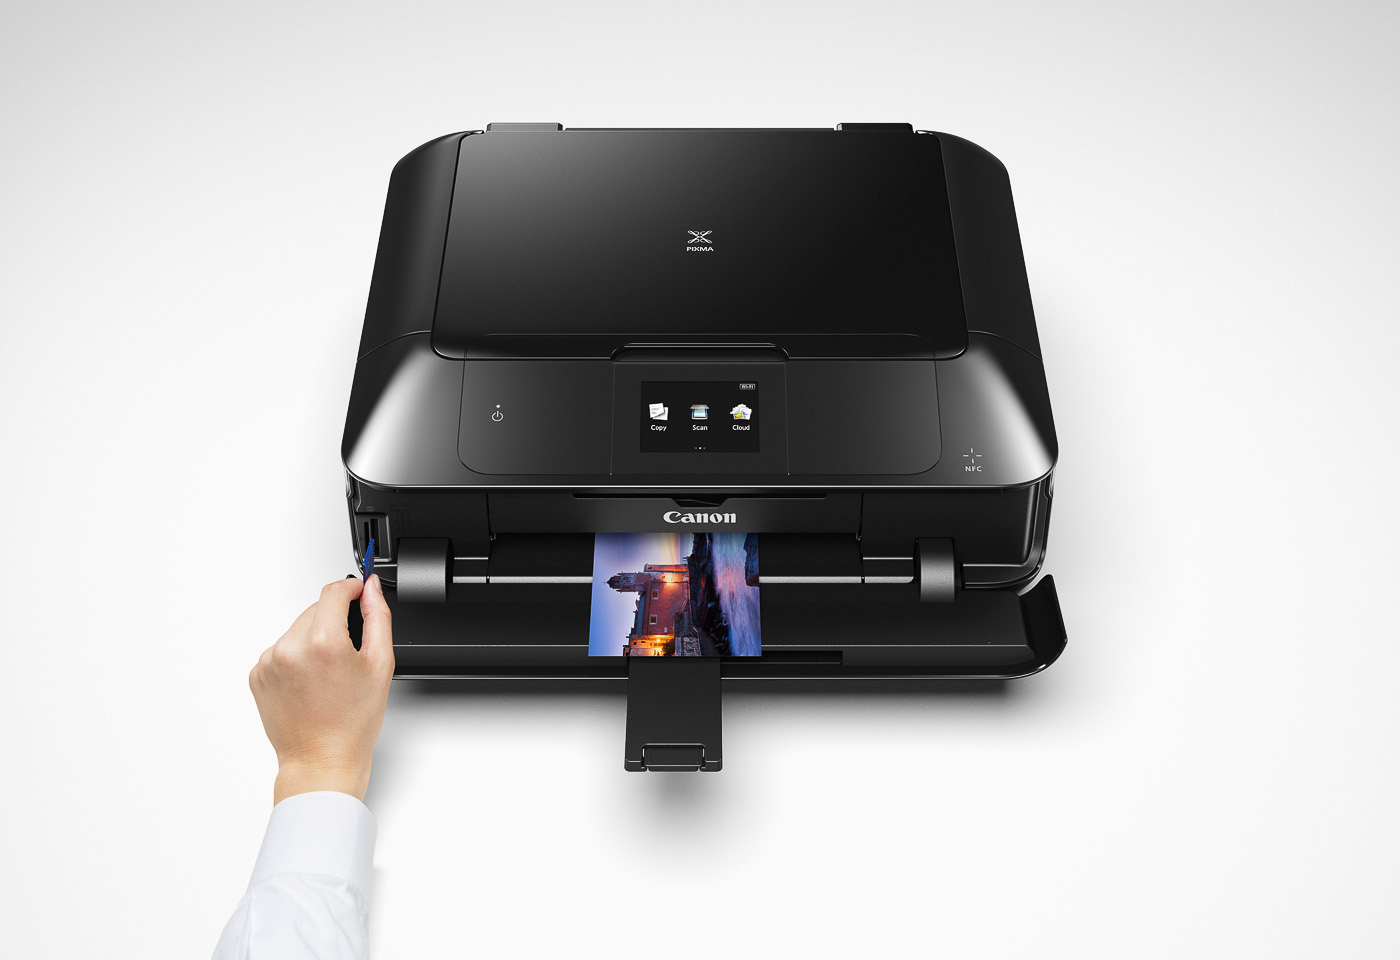 pixma mg7760 printing from an SD card